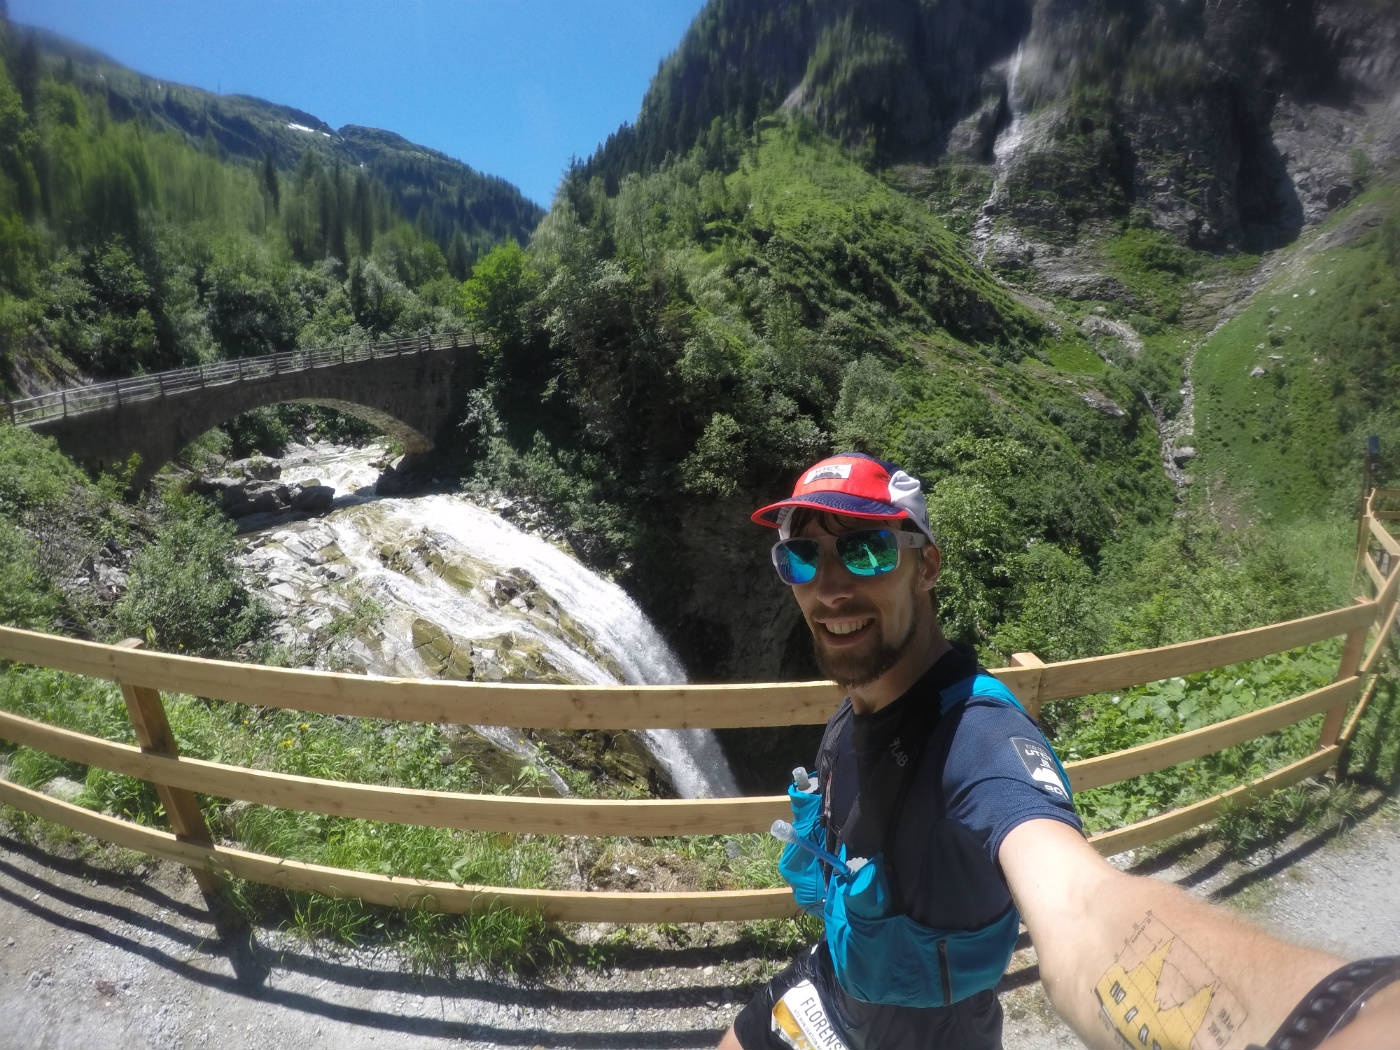 Taking a selfie during the Infinite Trails World Championships running past a waterfall and bridge